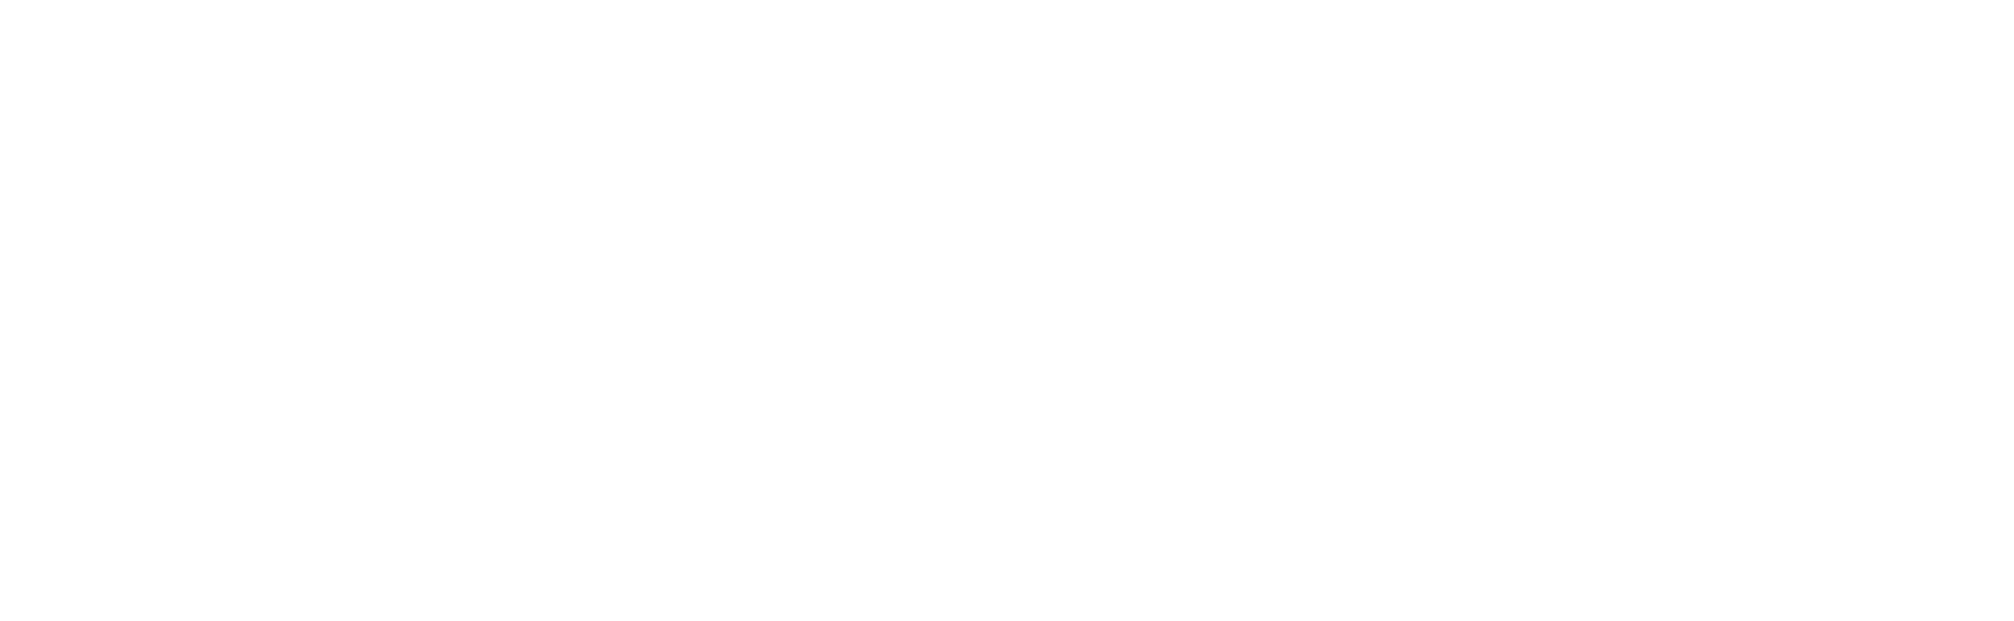 waterkeeper-alliance-logo-wh